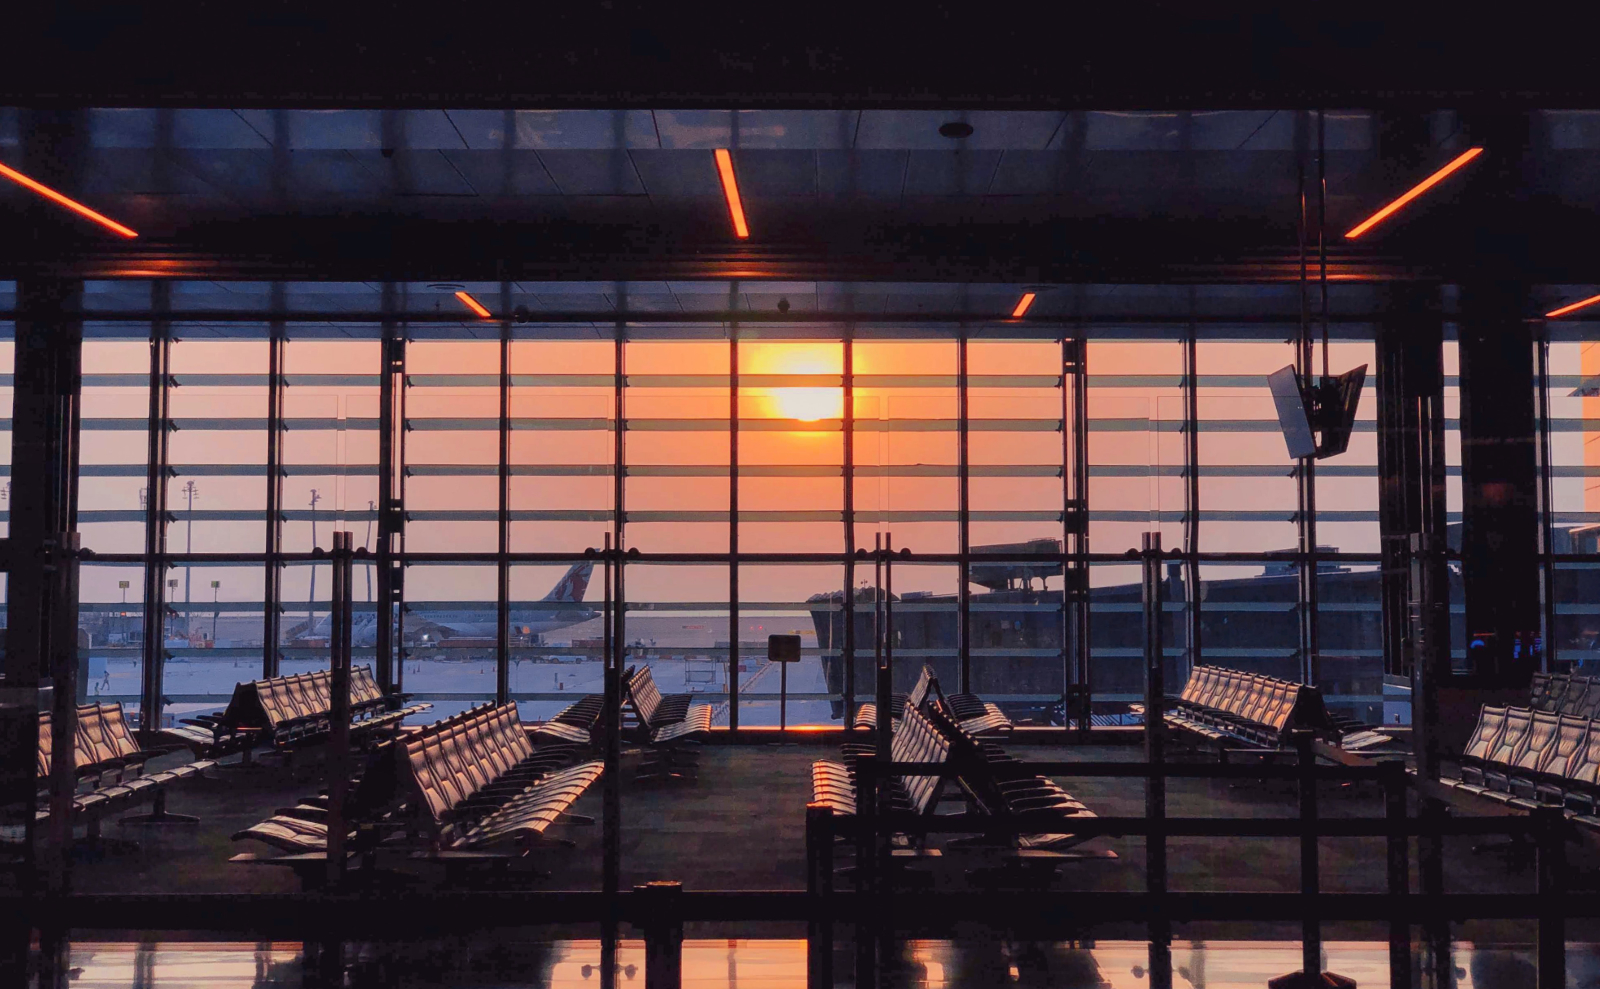 deserted airport at sunset